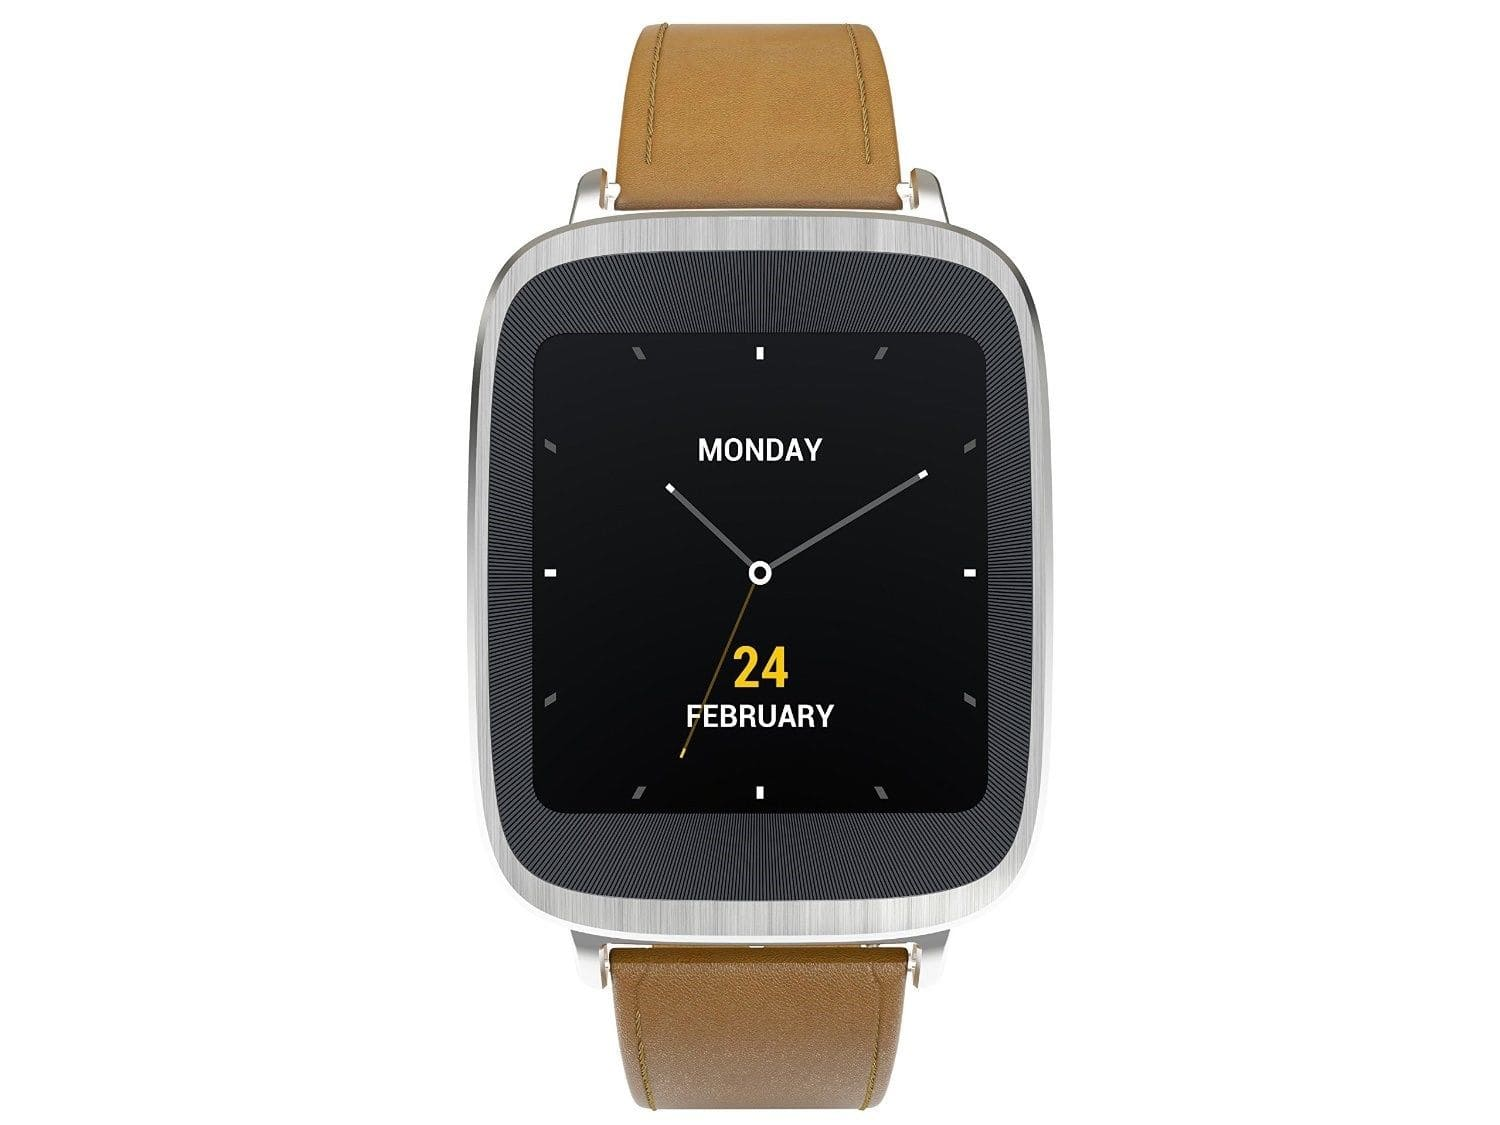 Asus ZenWatch 4GB 1.2GHz Bluetooth Android Touchscreen Smartwatch (Refurbished) $70 + Free Shipping (eBay Daily Deal)